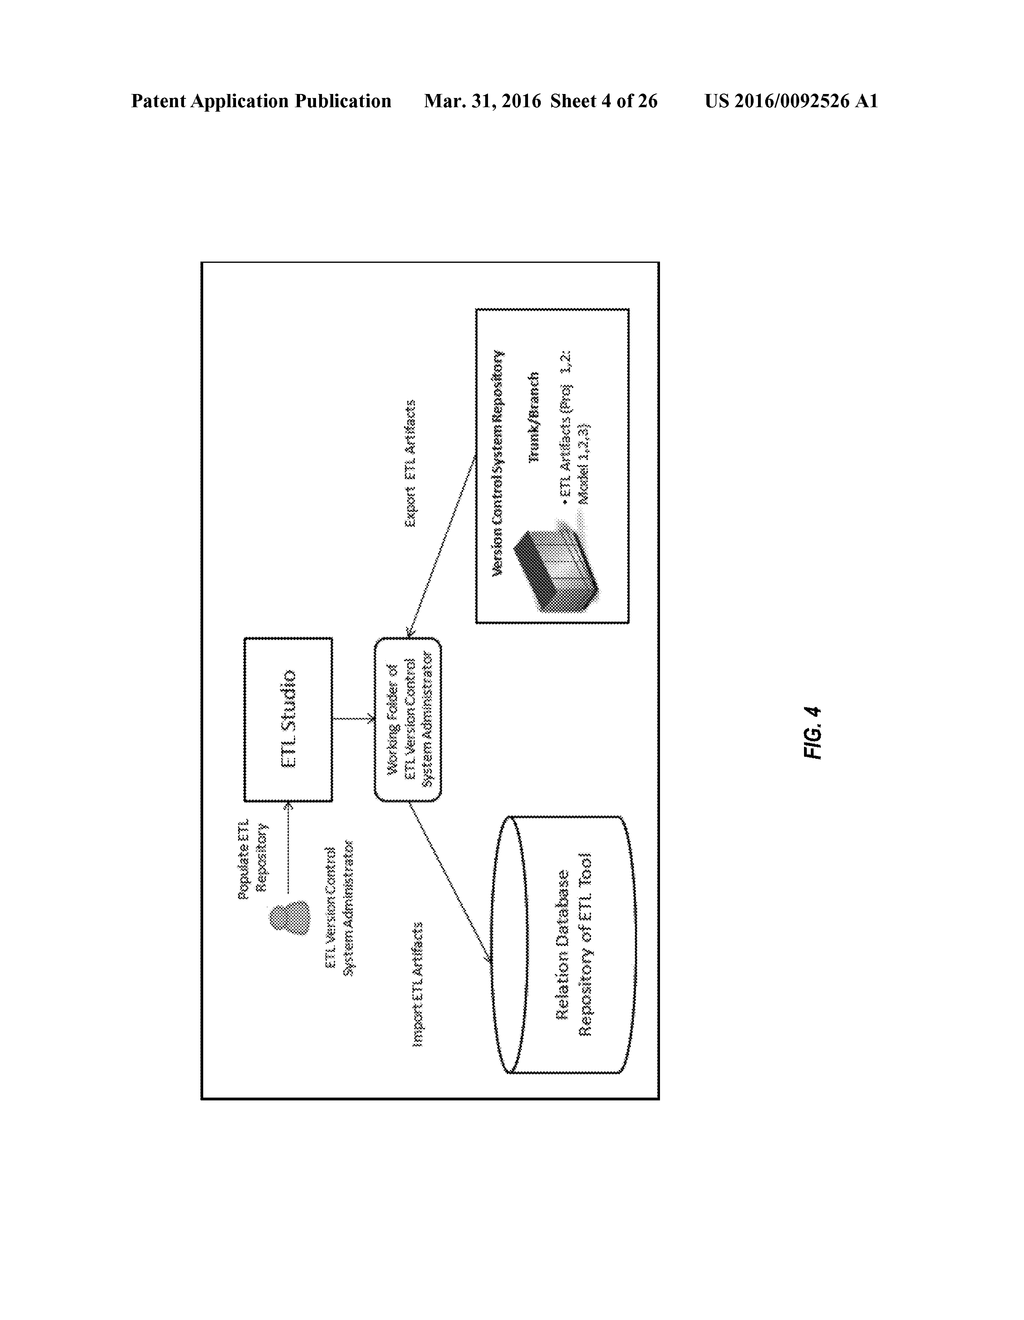 Integrating object based data integration tool with a version integrating object based data integration tool with a version control system in centralized and decentralized environments diagram schematic and image pooptronica